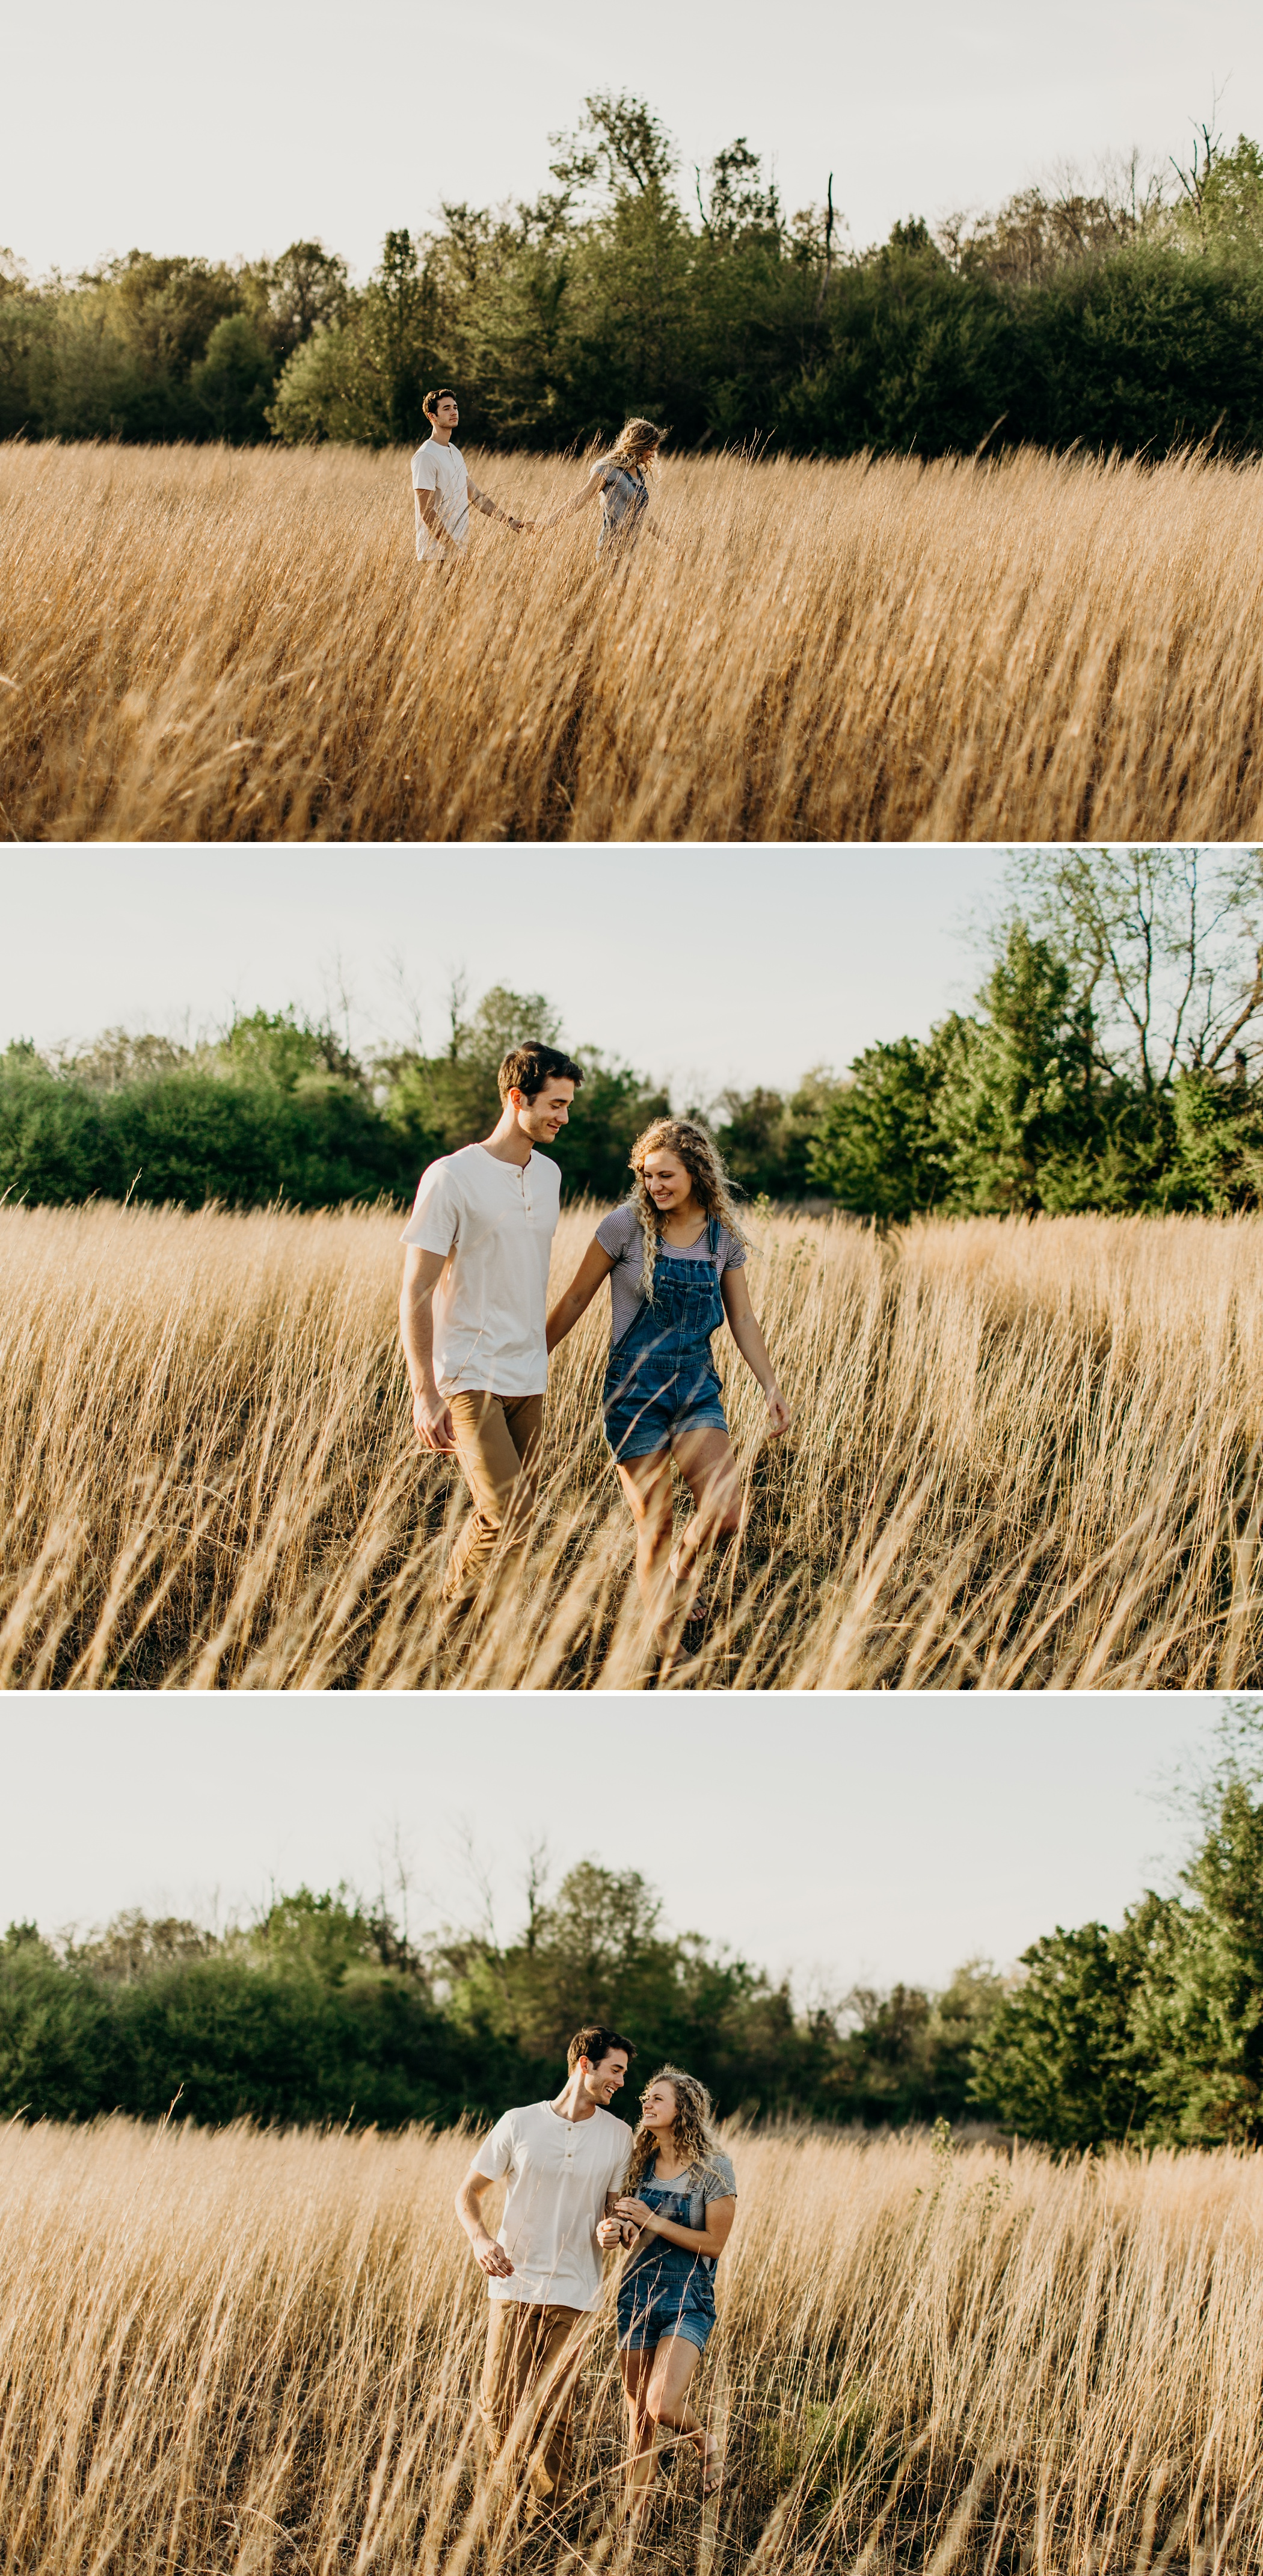 camping engagement session, colorado engagement session, the johnsons photo, intimate engagement session, adventurous engagement session, arkansas wedding photographer